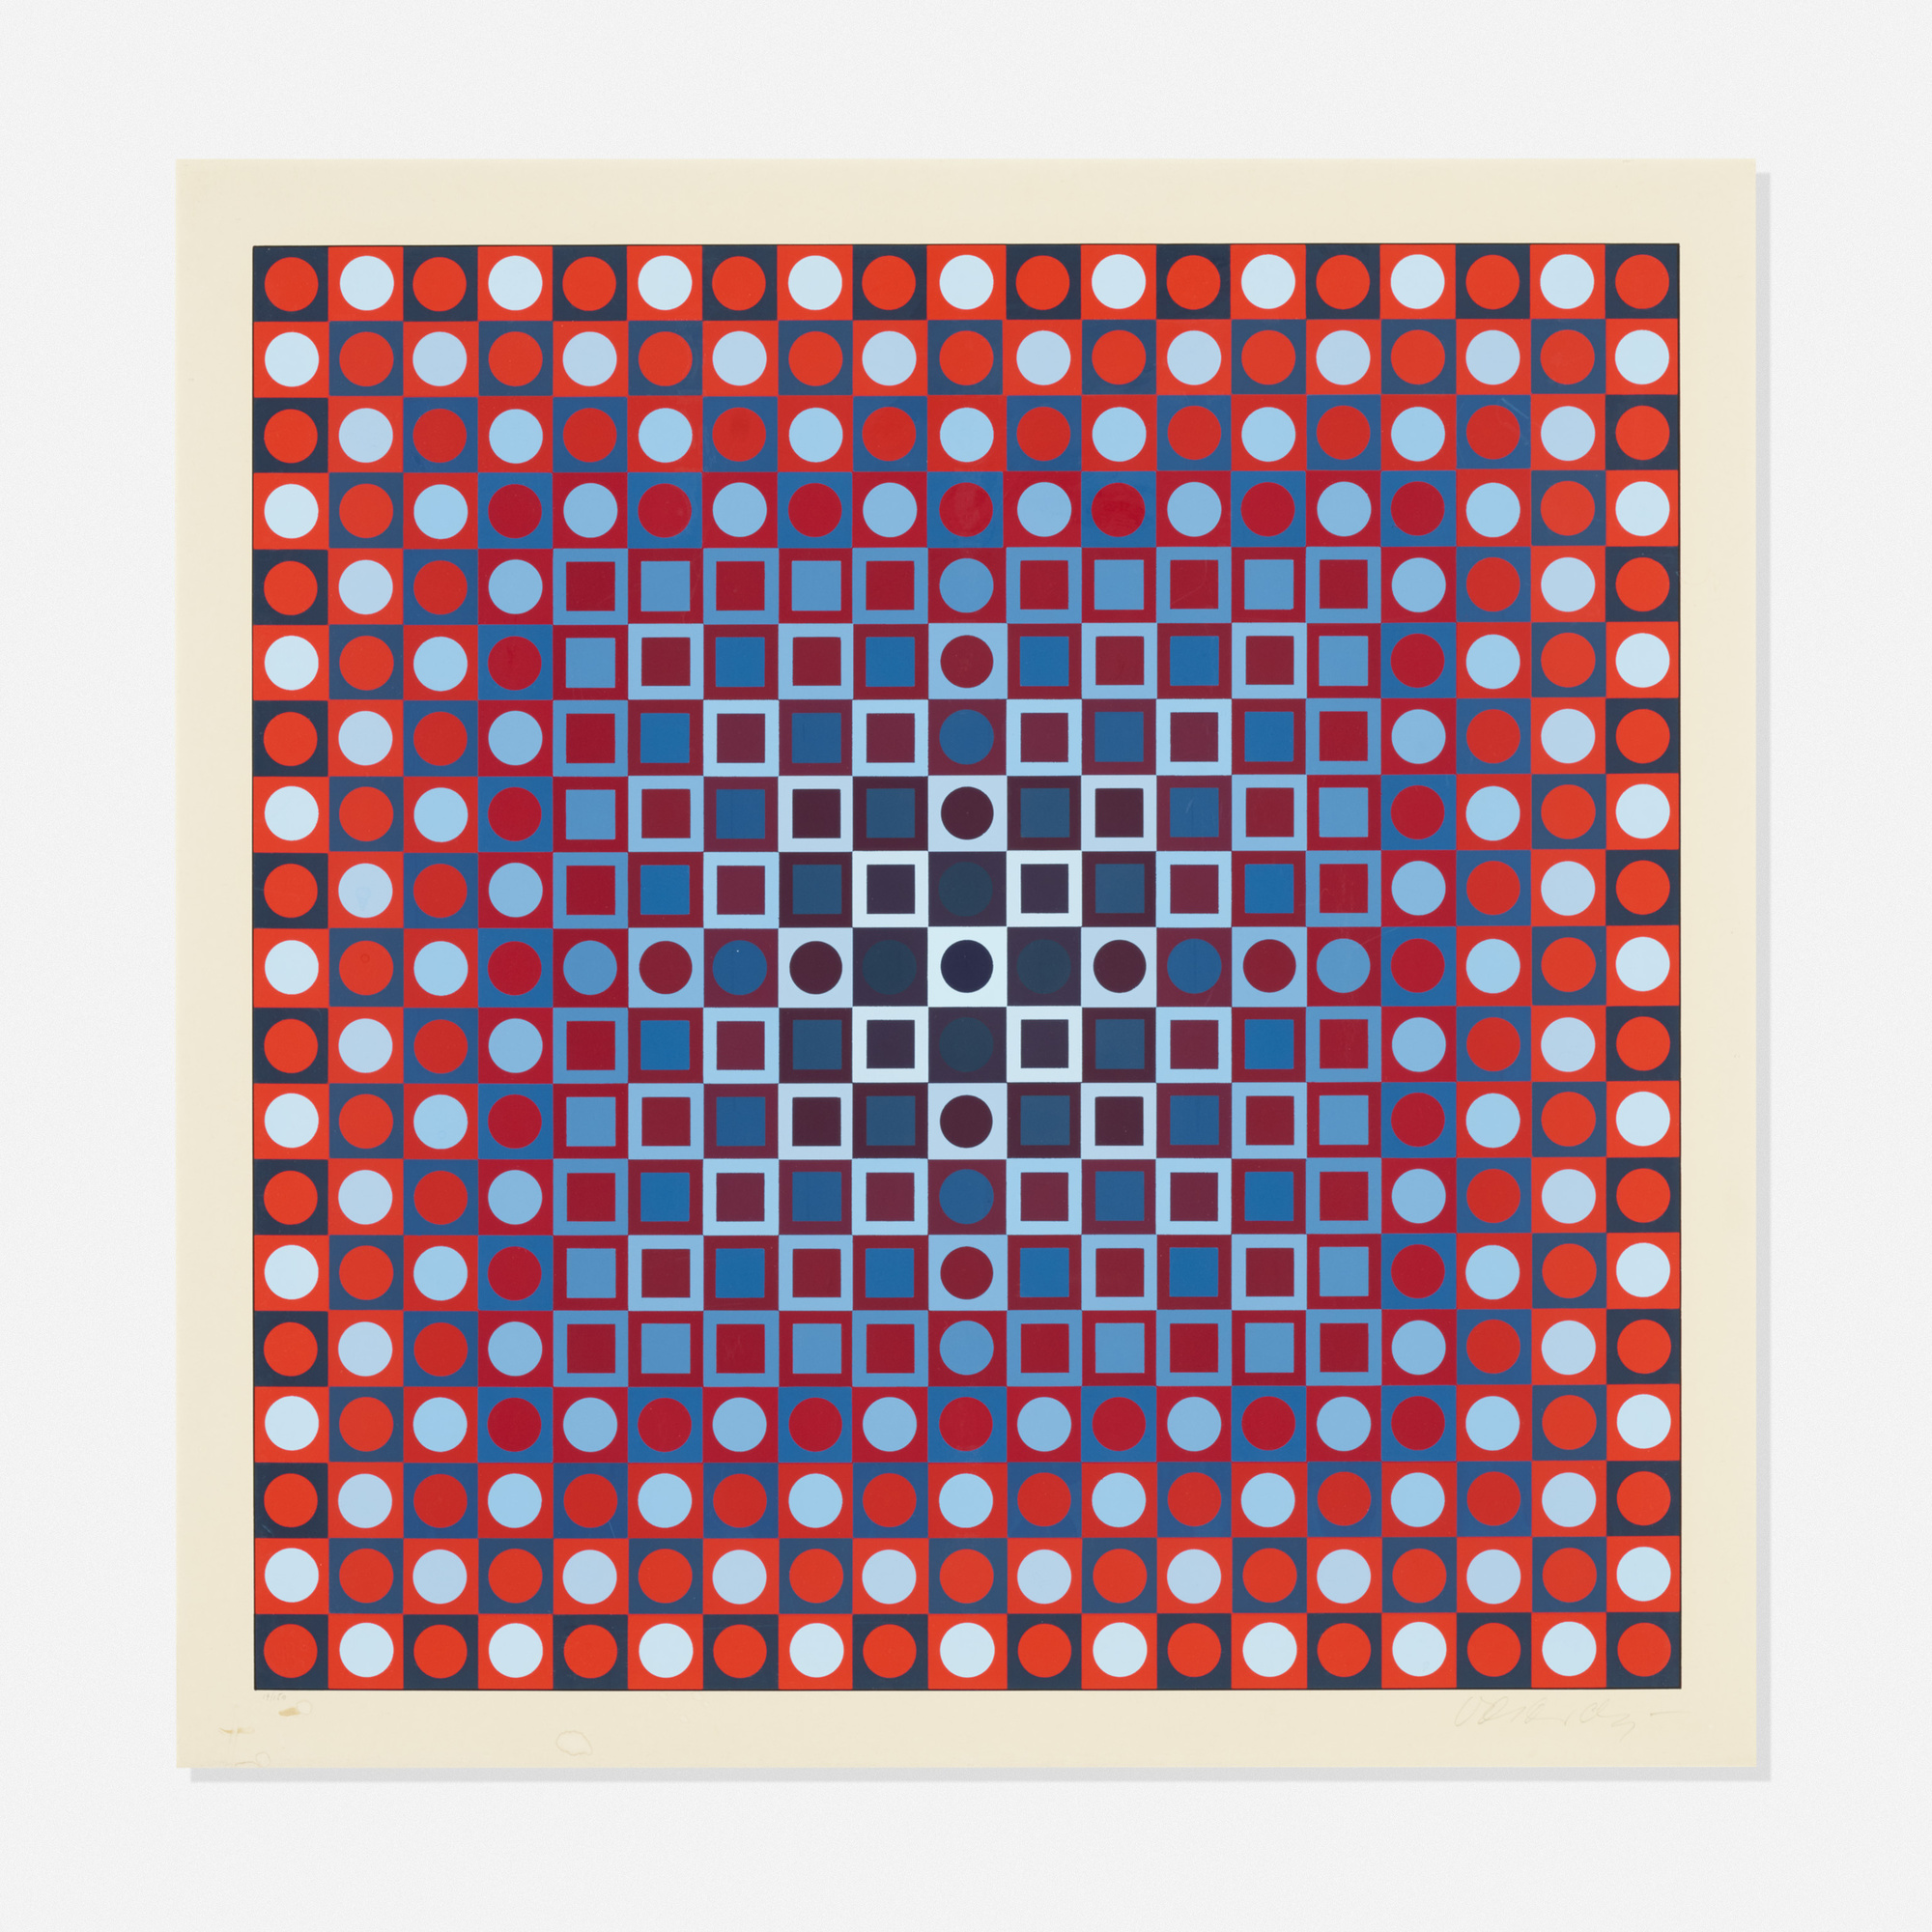 304: Victor Vasarely / Alom BR (1 of 1)